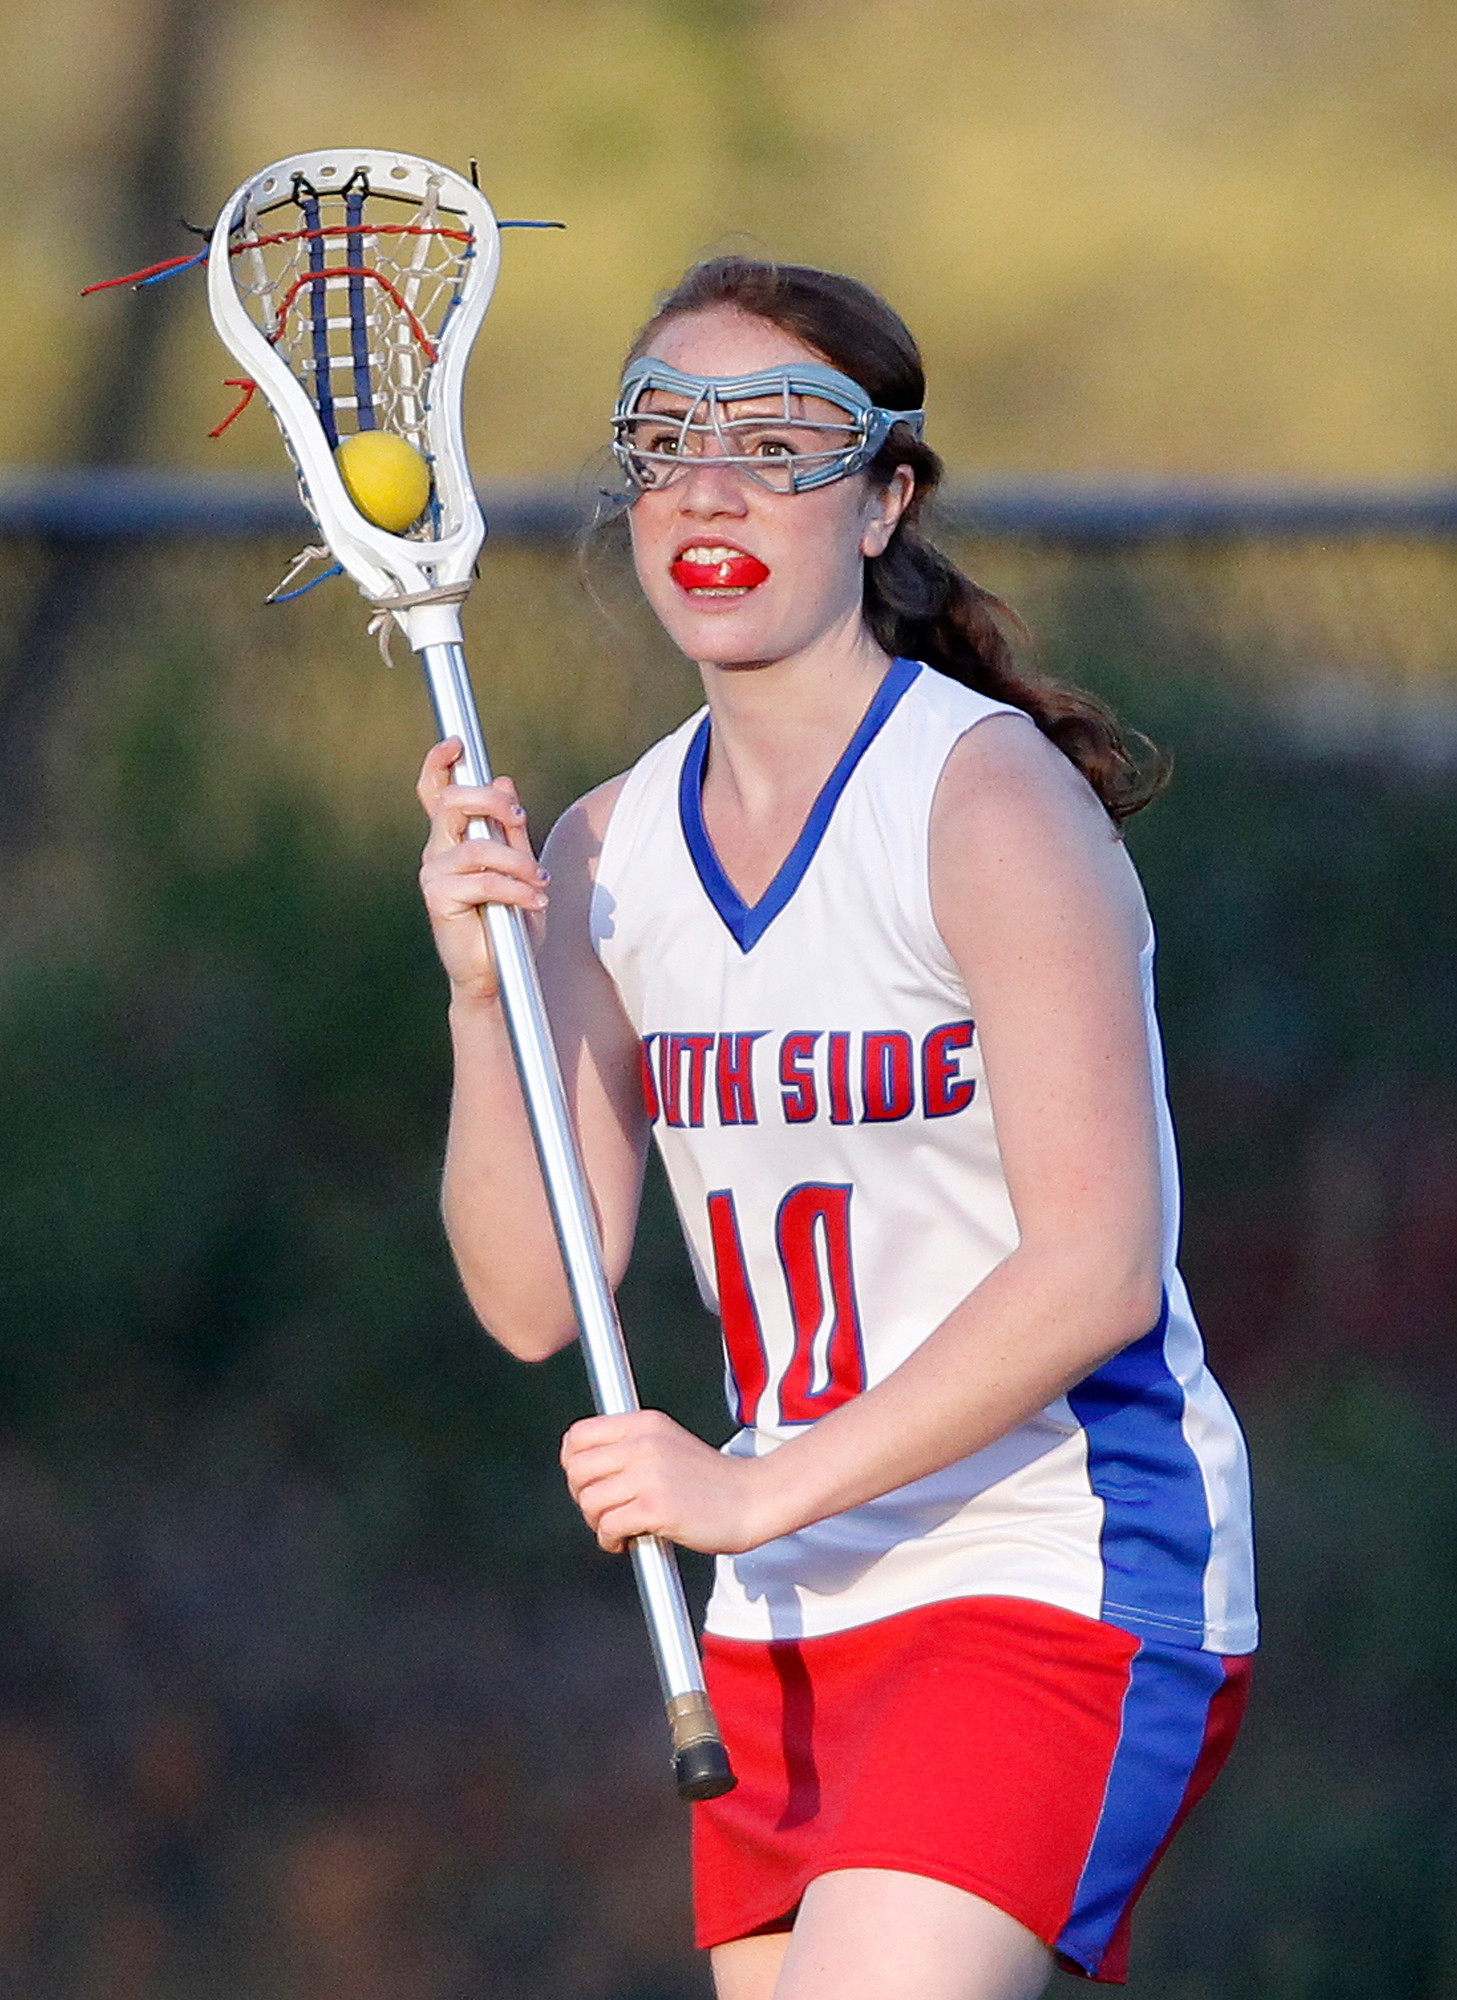 Briar Rose DeTomasso scored twice in South Side's 11-8 victory over Locust Valley last Friday.